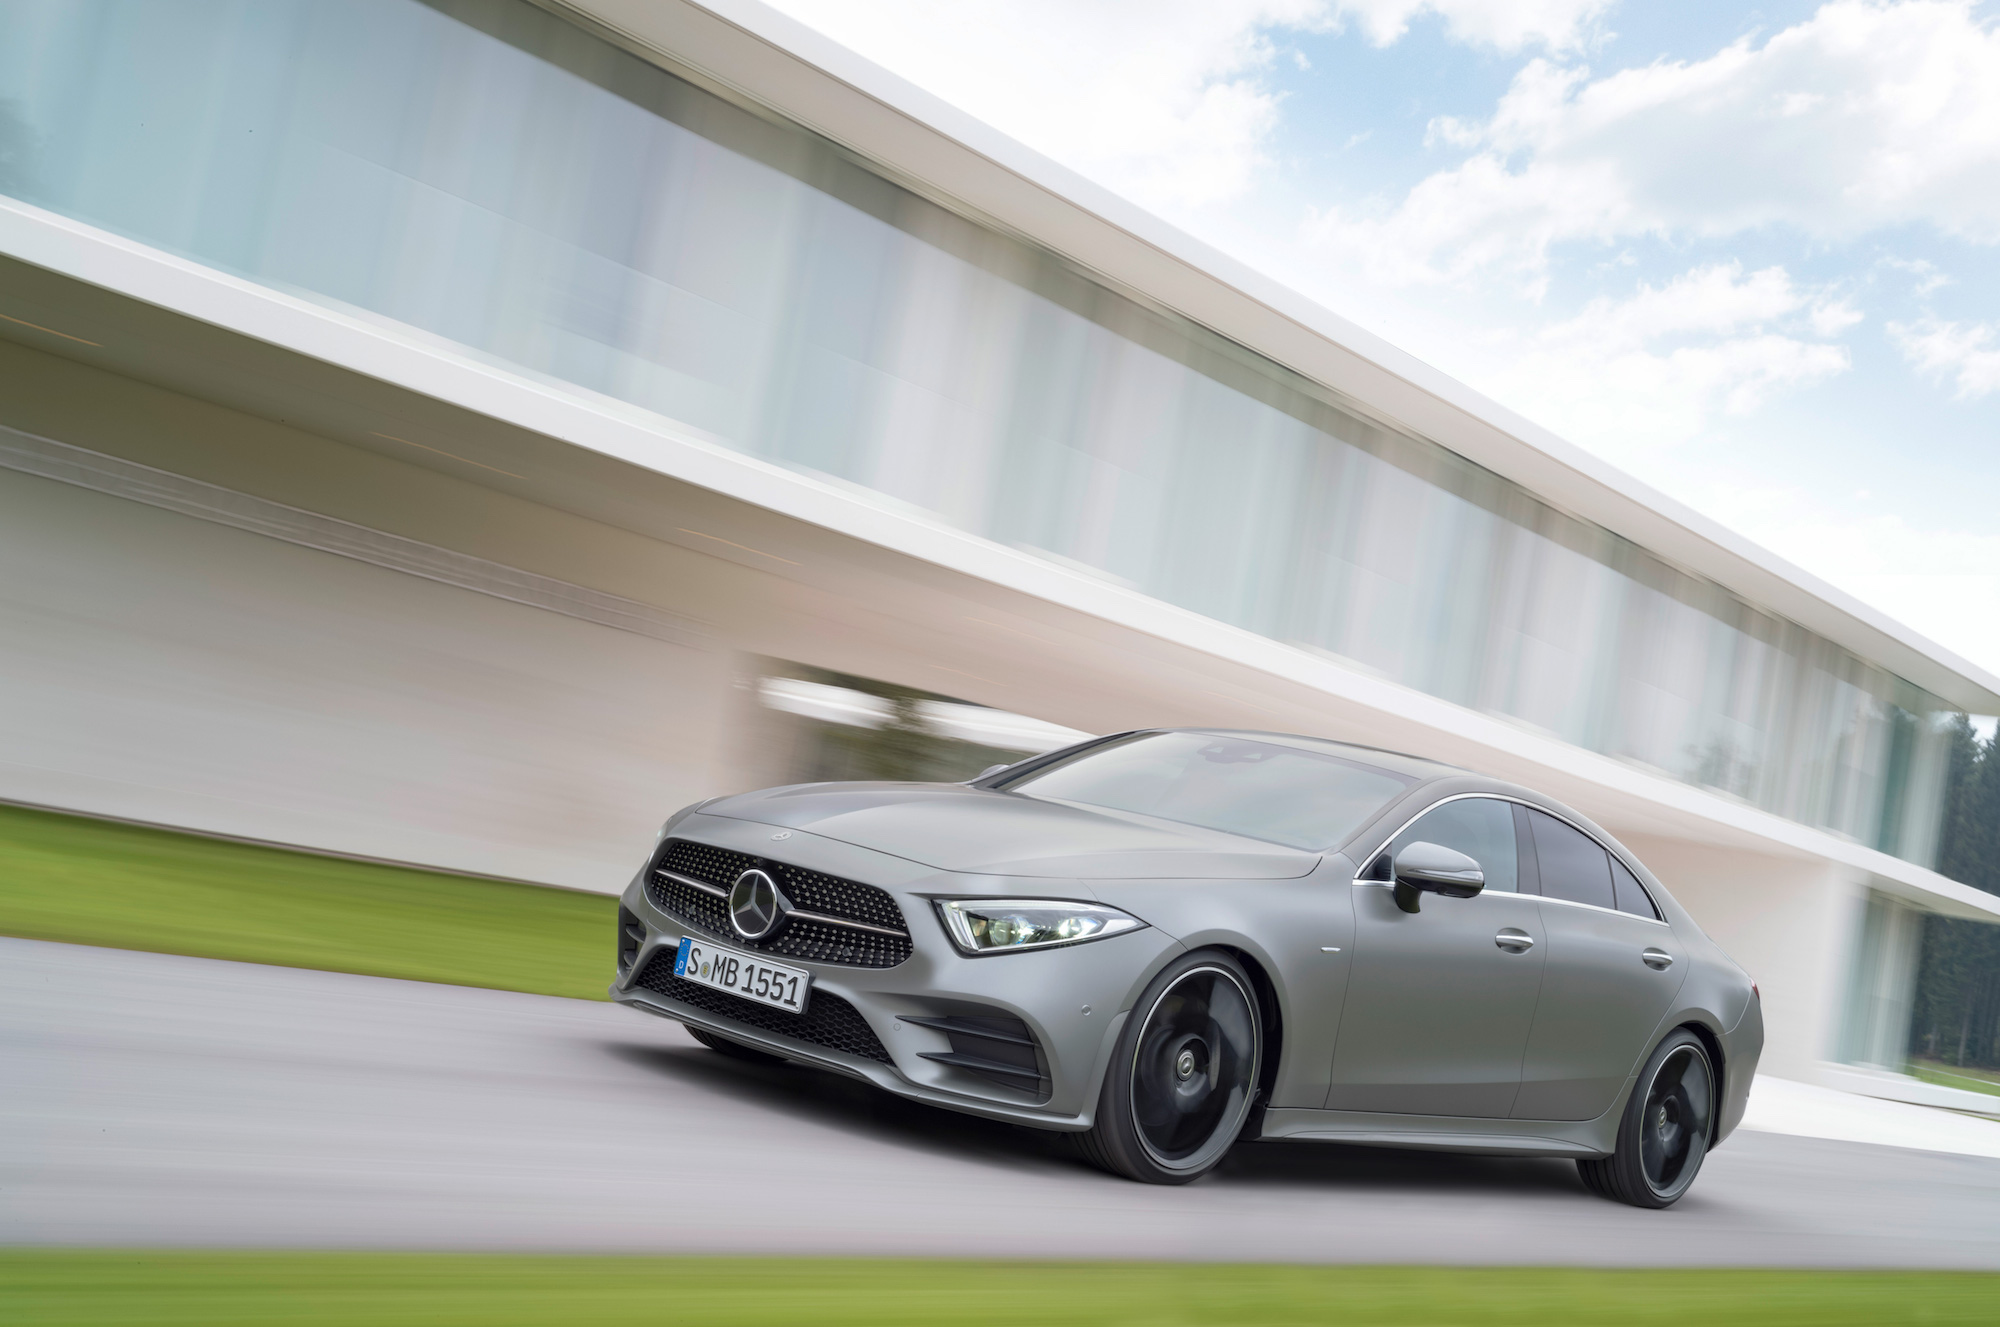 The Mercedes-Benz CLS will start from £57k